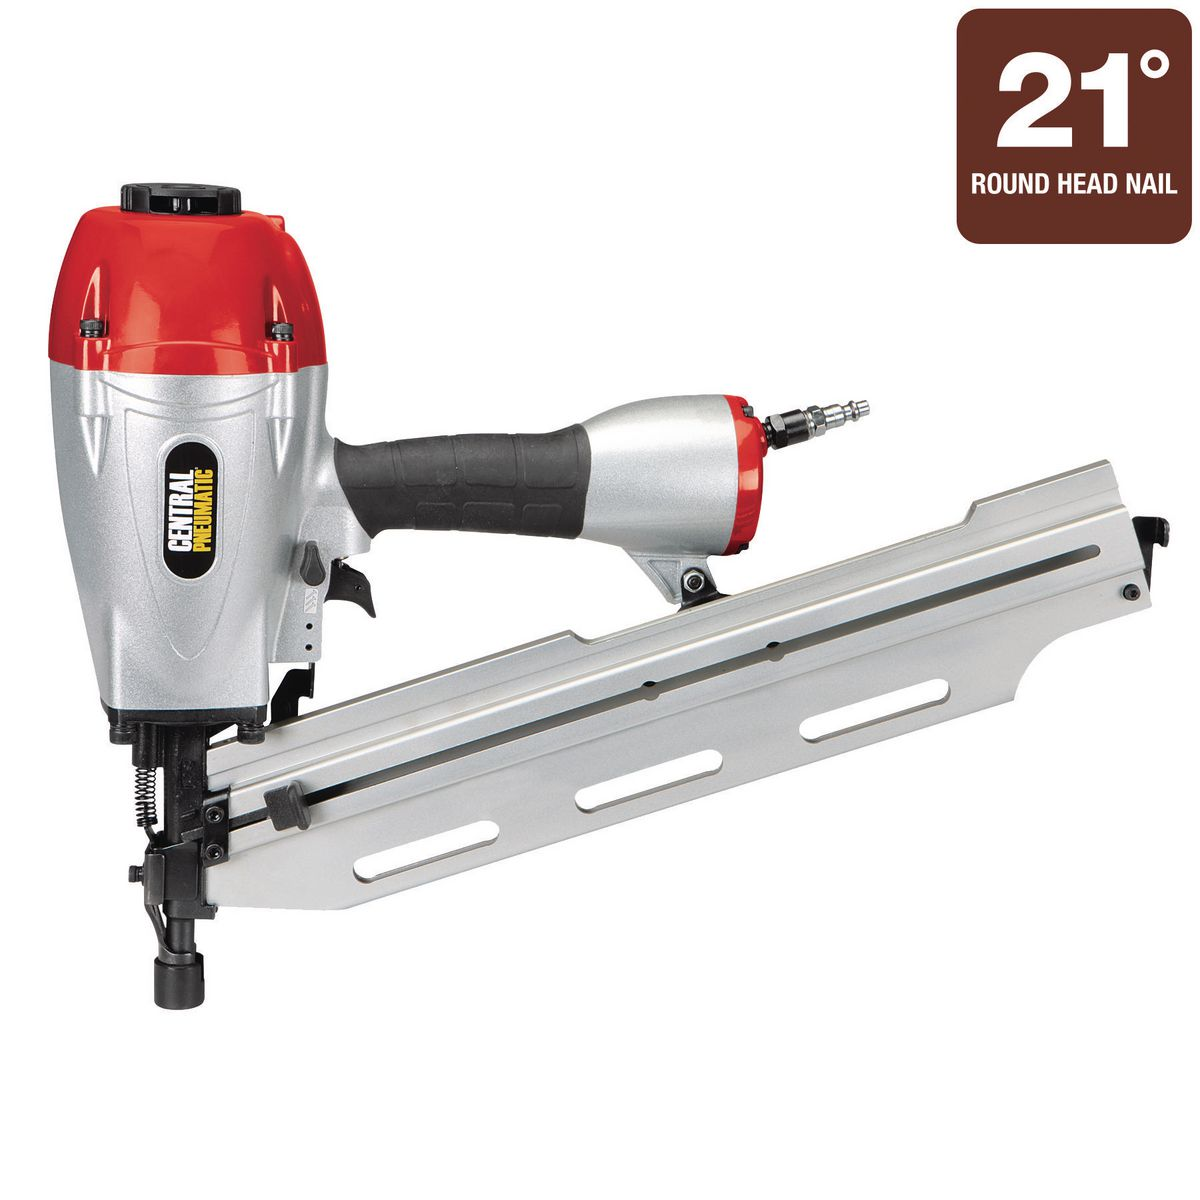 21° Angle Full Head Framing Air Nailer